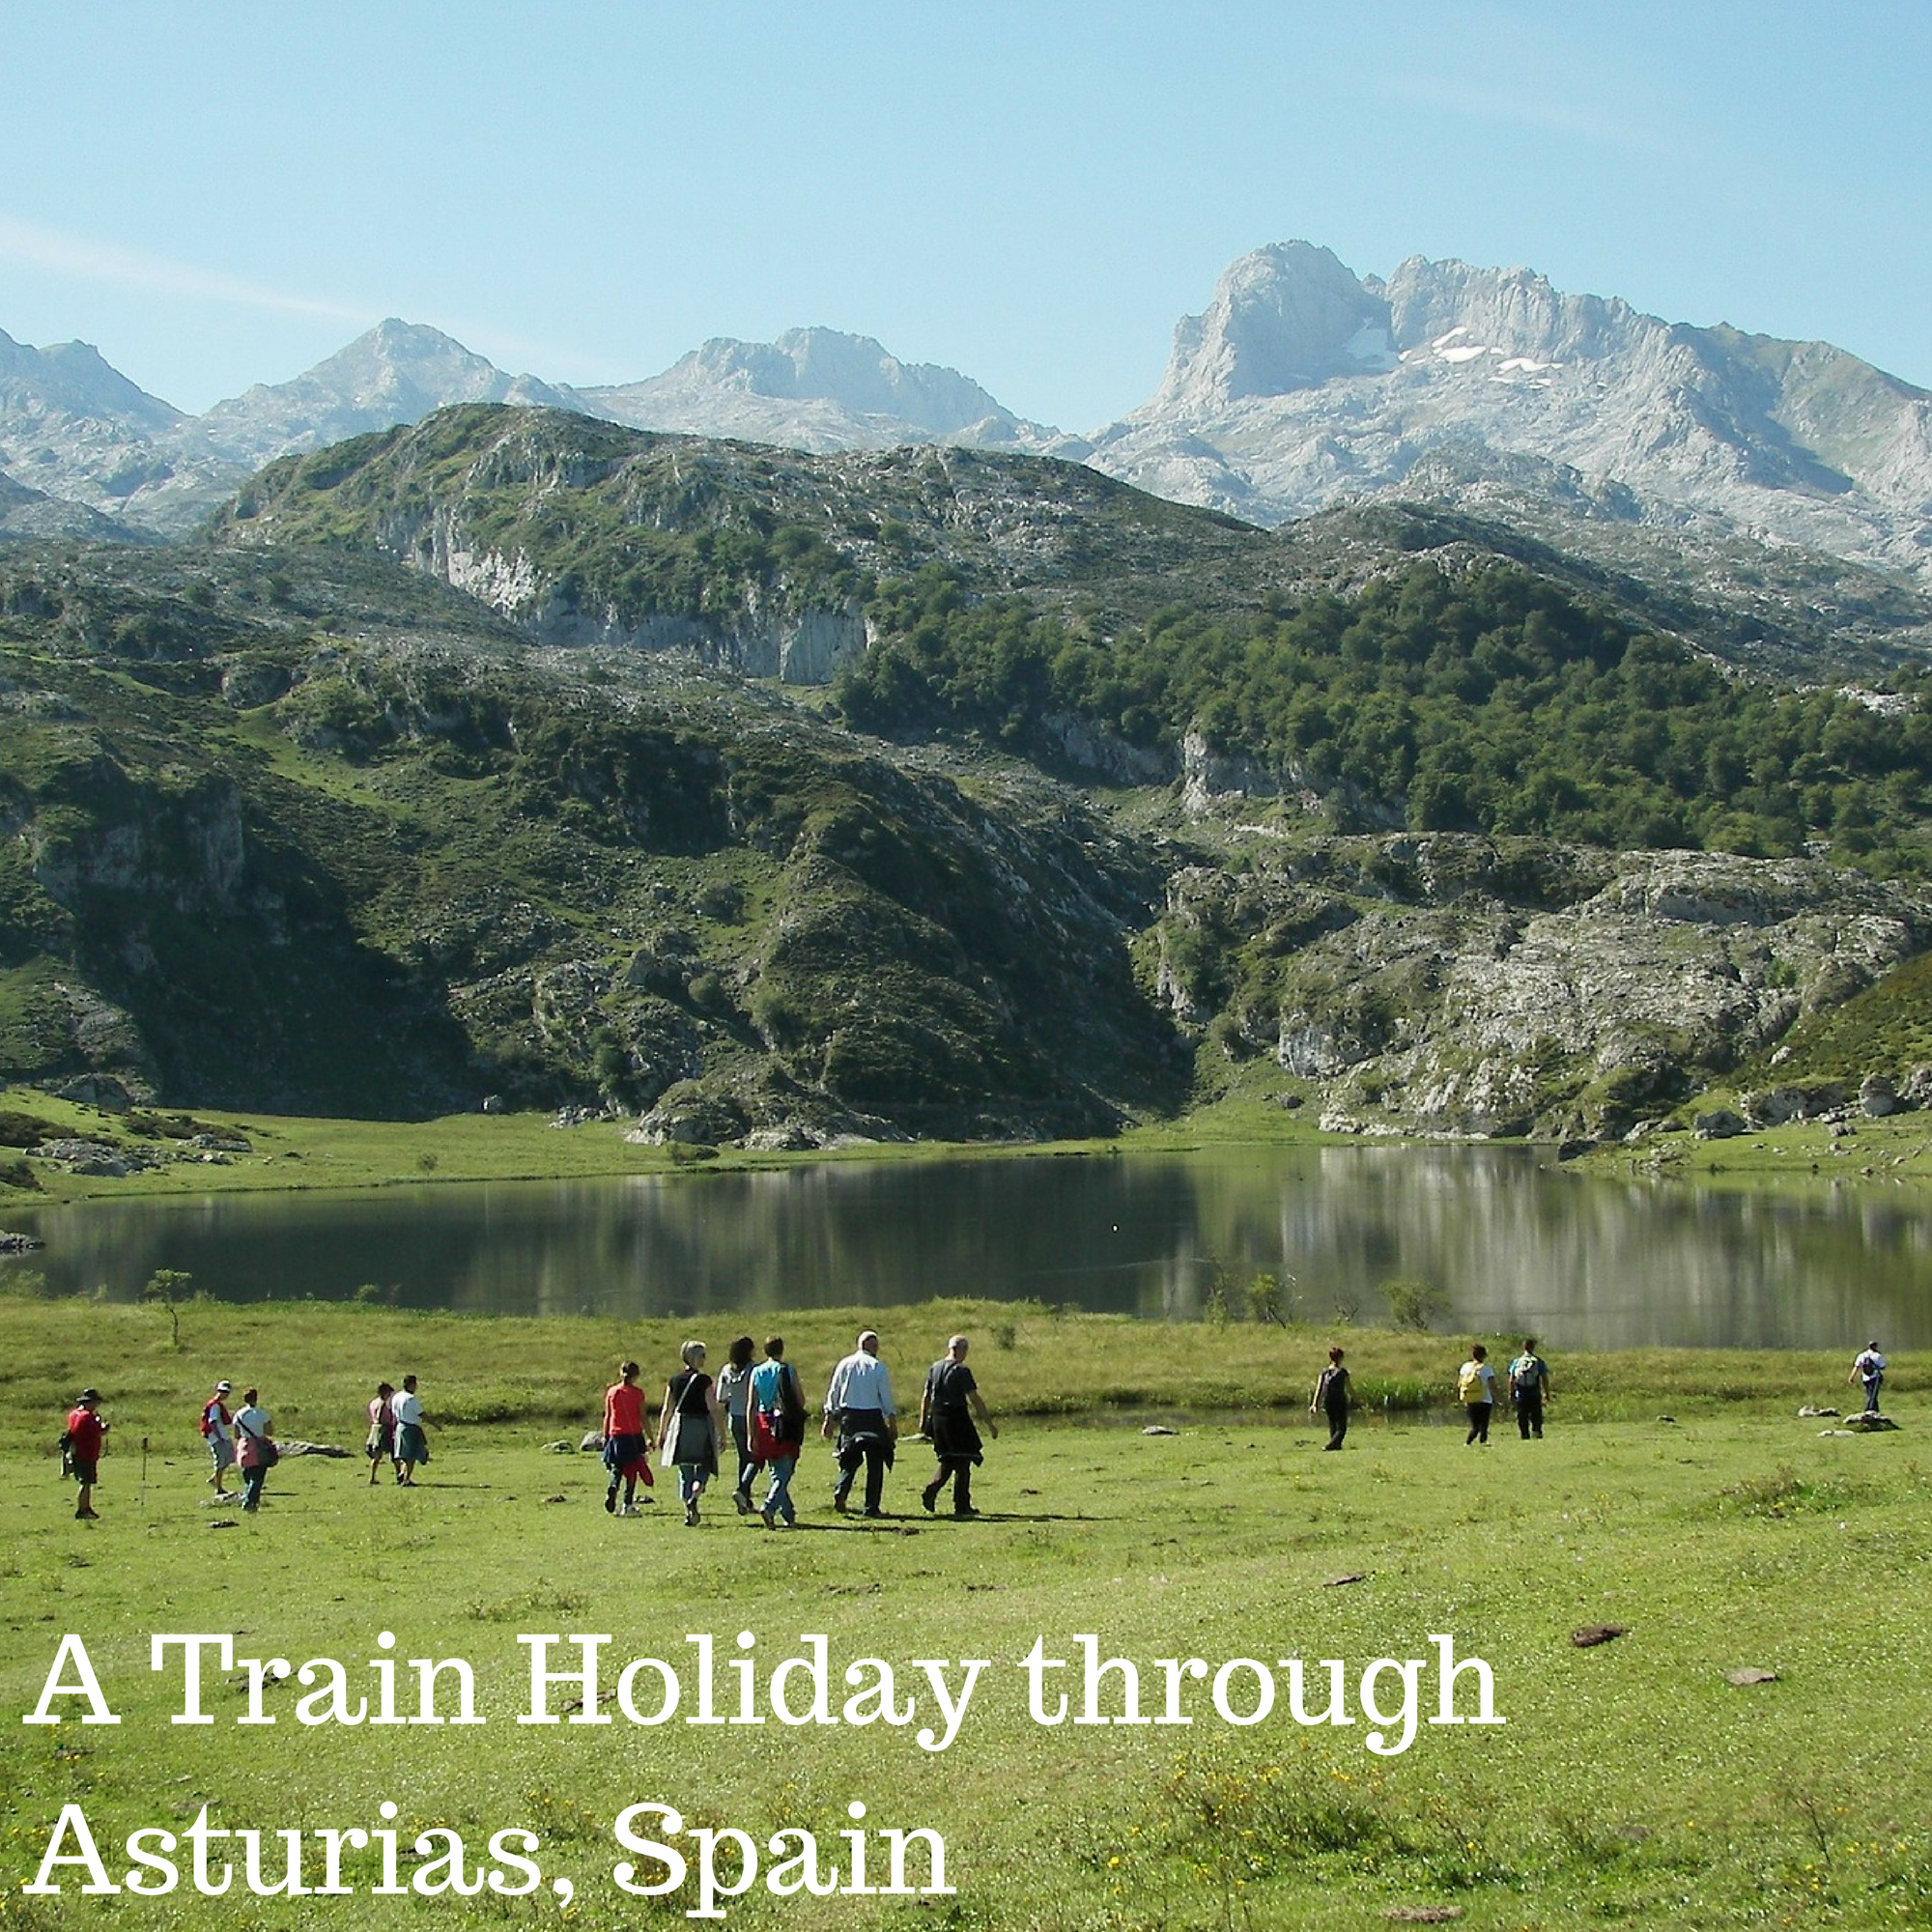 A Train Holiday through Asturias, Spain